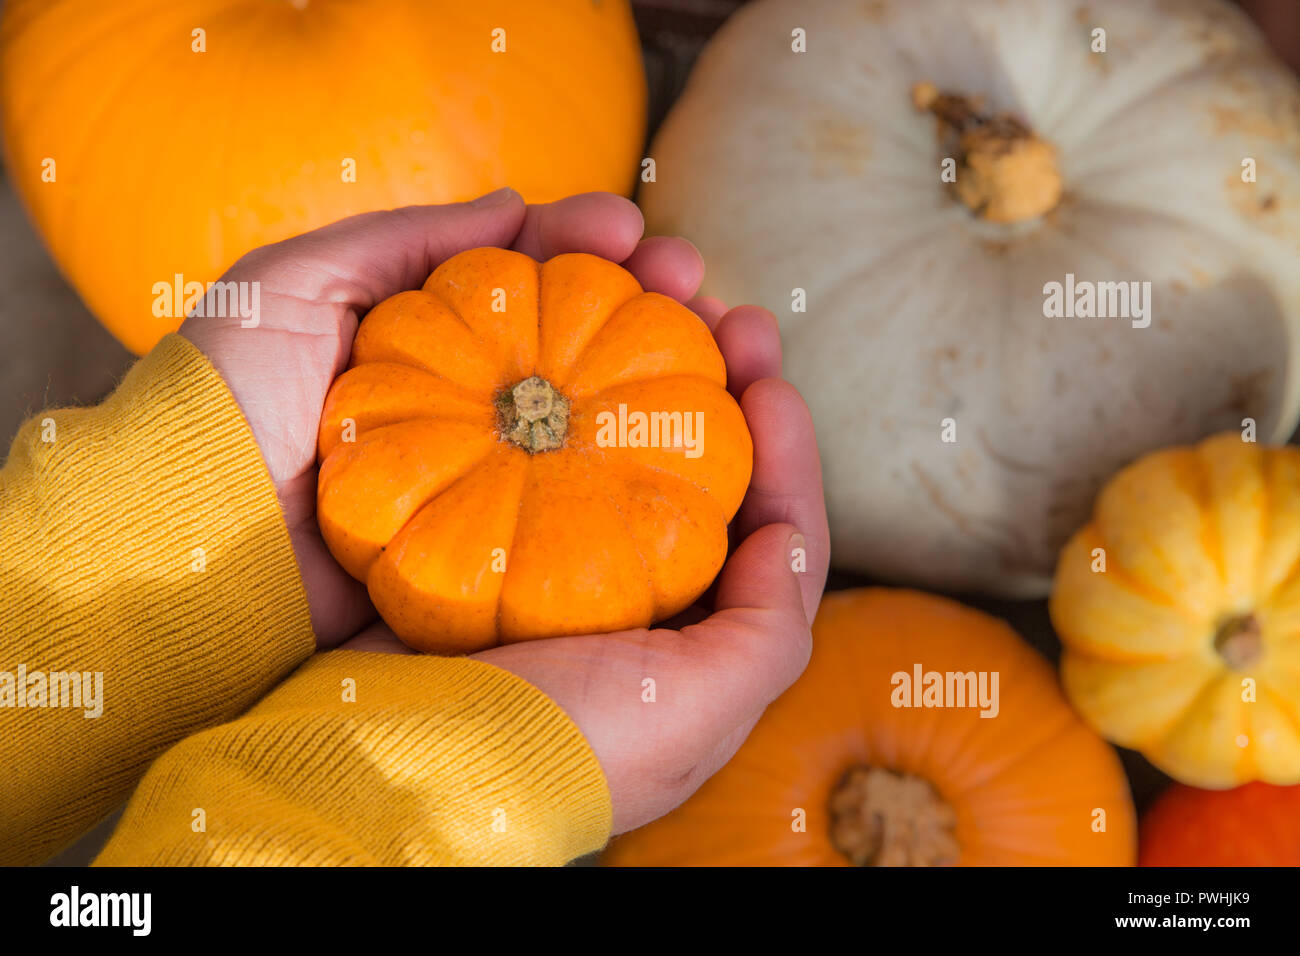 A pair of humna hands holding a tiny pumpkin called a munchkin over a selection of different winter squash and gourds - Stock Image